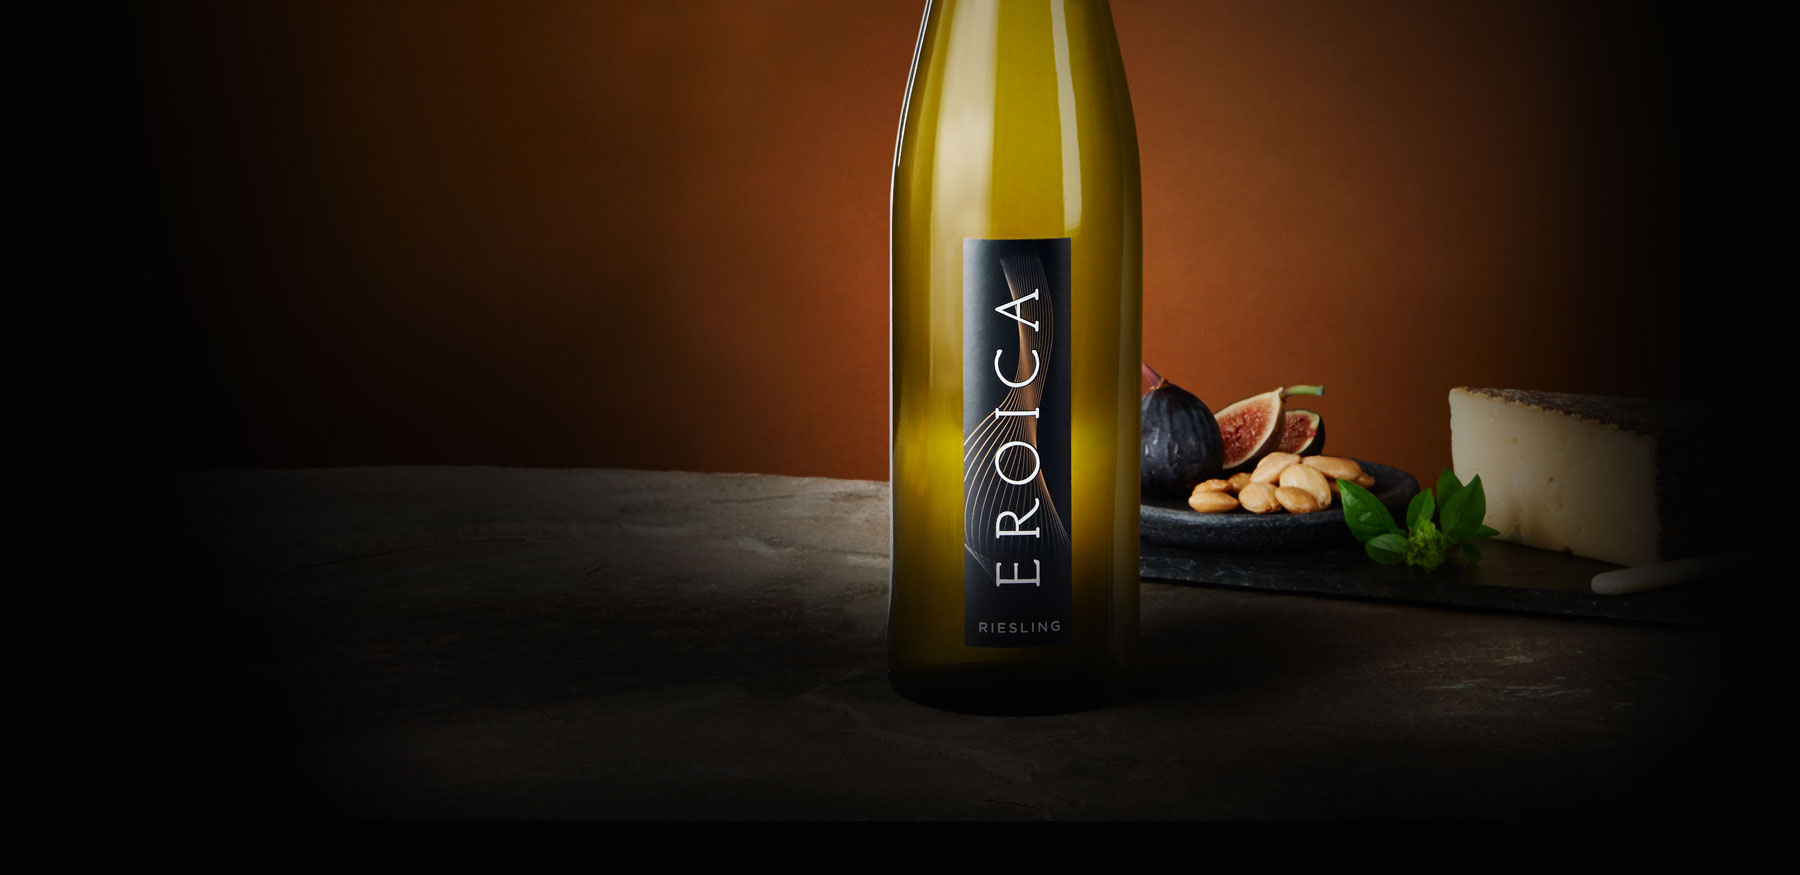 Eroica Riesling bottle